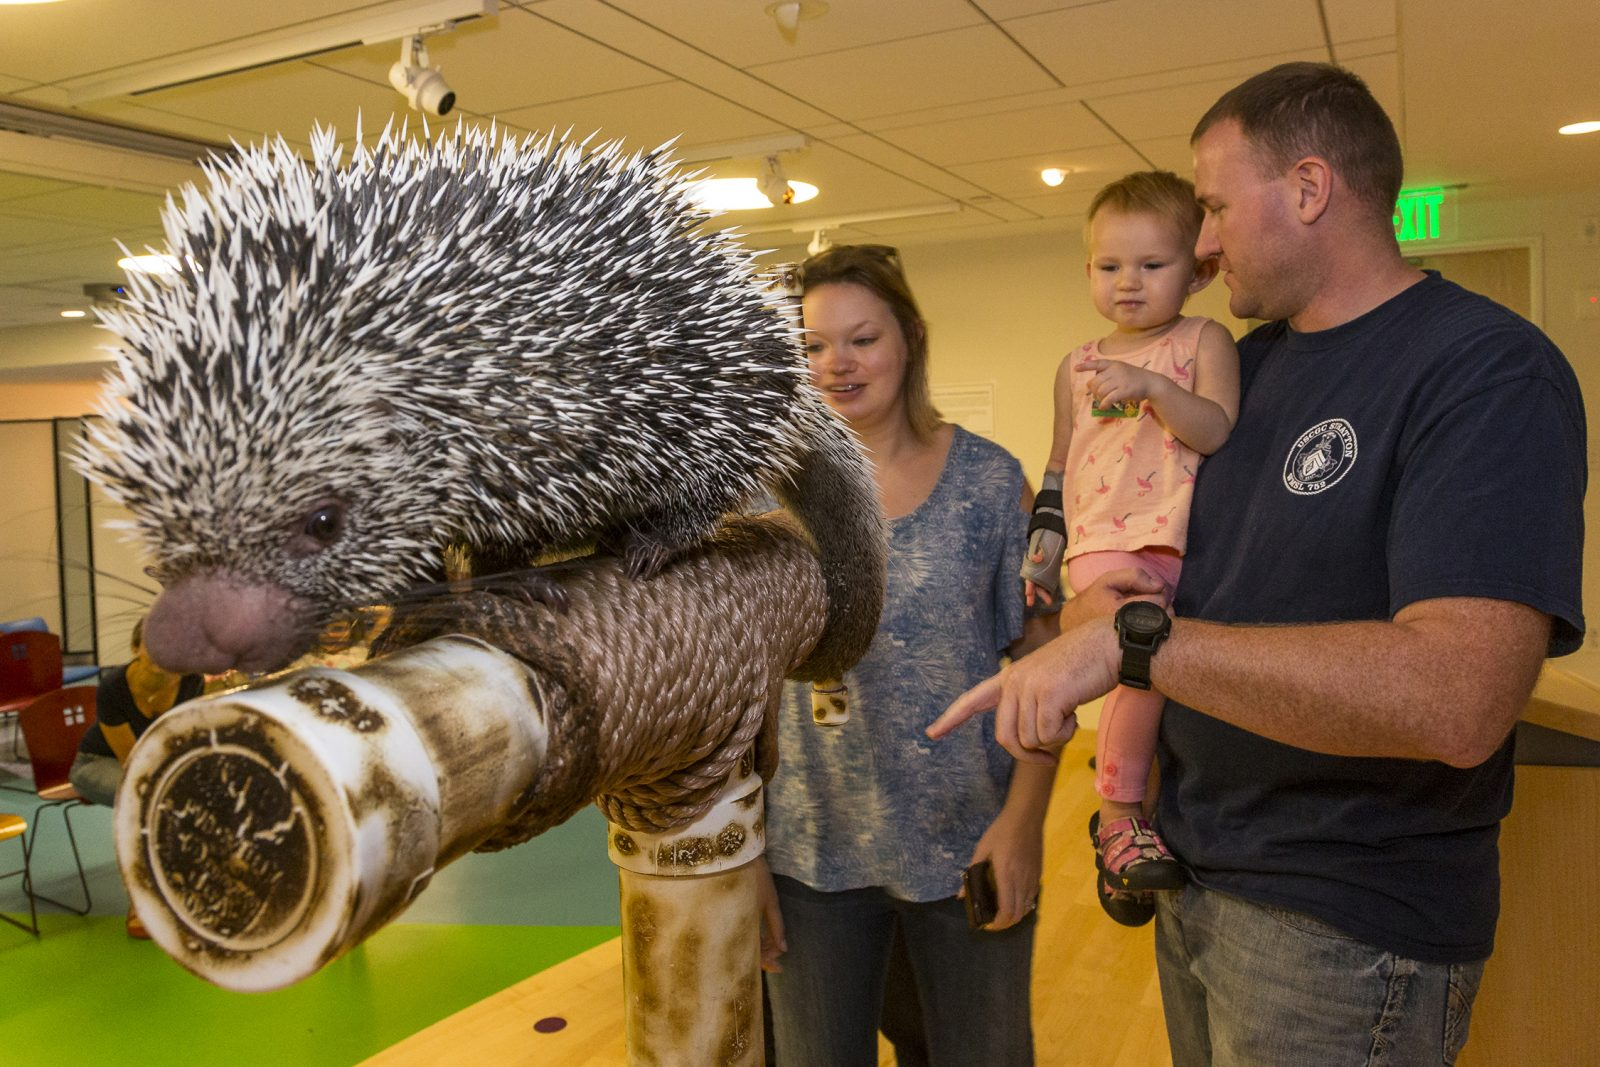 Zoos Bring Animal Kingdom to Patients at Boston Children's Hospital